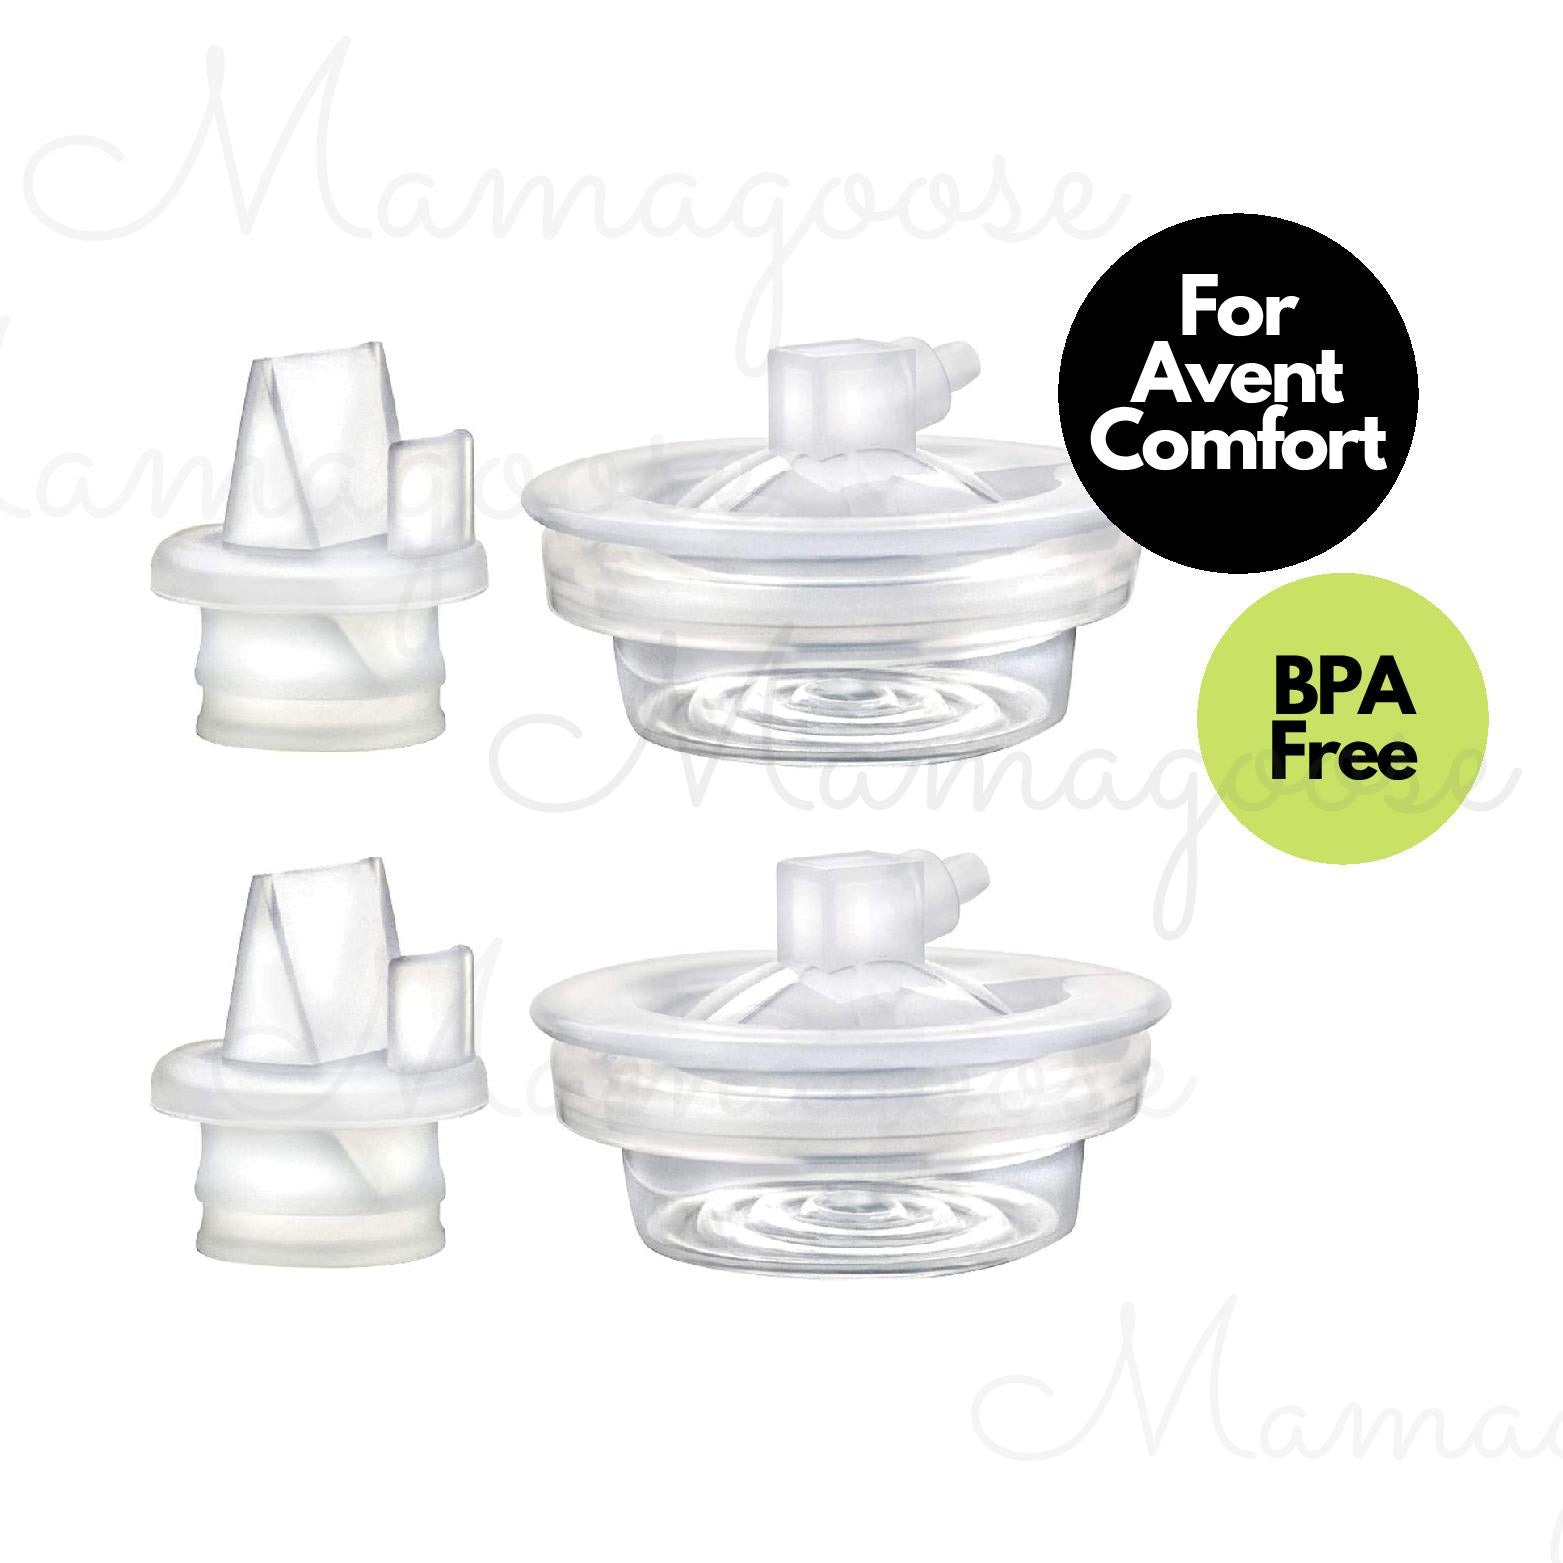 Breast Pump Parts | Maymom Valve Diaphragm for Philips Avent Comfort Breast Pump Part | Mamagoose | Part/Accessory for Philips Avent